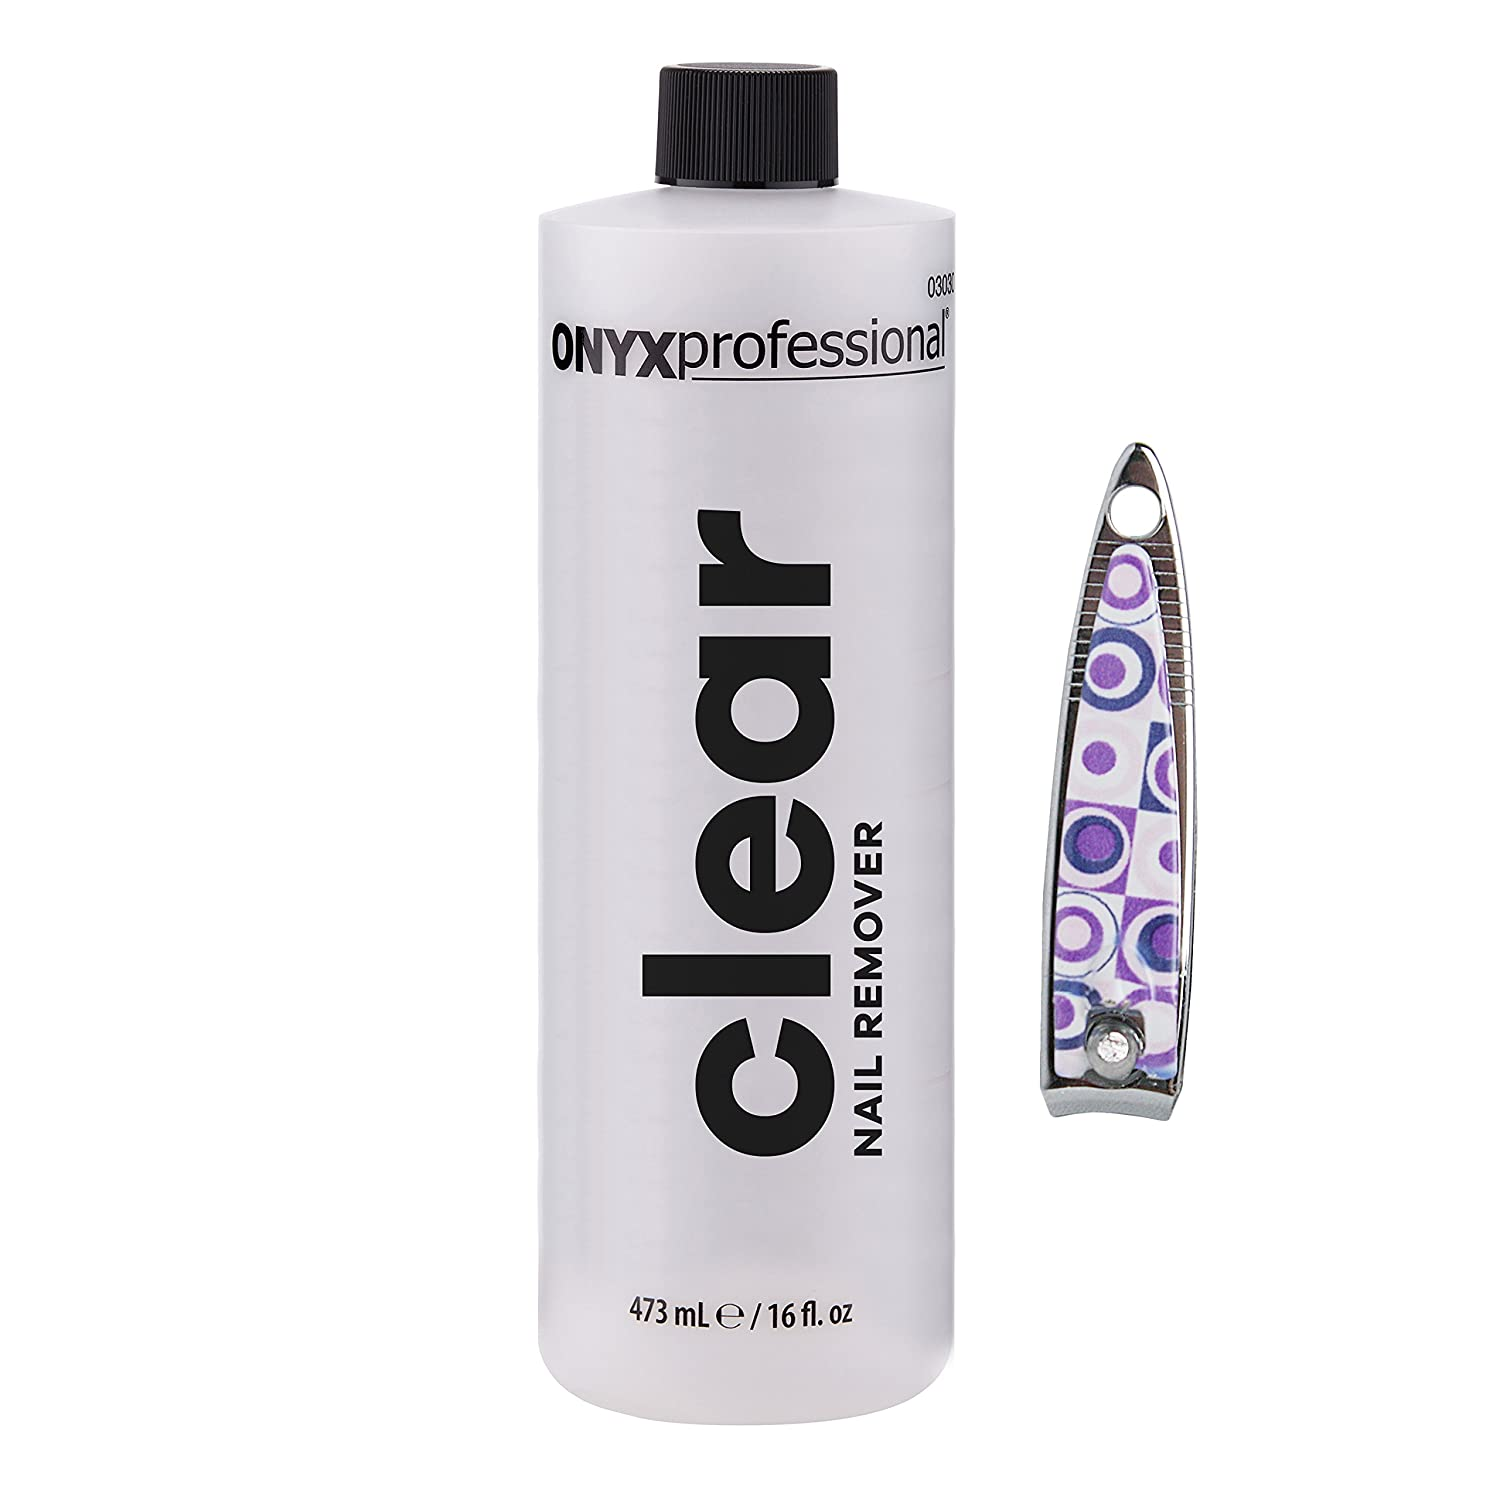 Buy Onyx Professional 100% Acetone Remover Removes